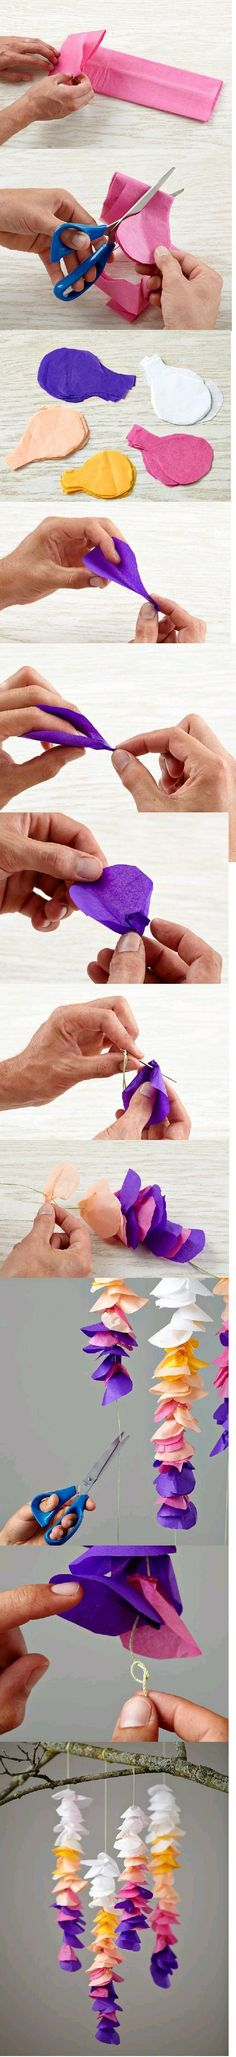 Maria C Sandoval A. – Origami Community : Explore the best and the most trending origami Ideas and easy origami Tutorial Handmade Flowers, Diy Flowers, Fabric Flowers, Diy Paper, Paper Art, Paper Crafts, Diy And Crafts, Arts And Crafts, Tissue Paper Flowers